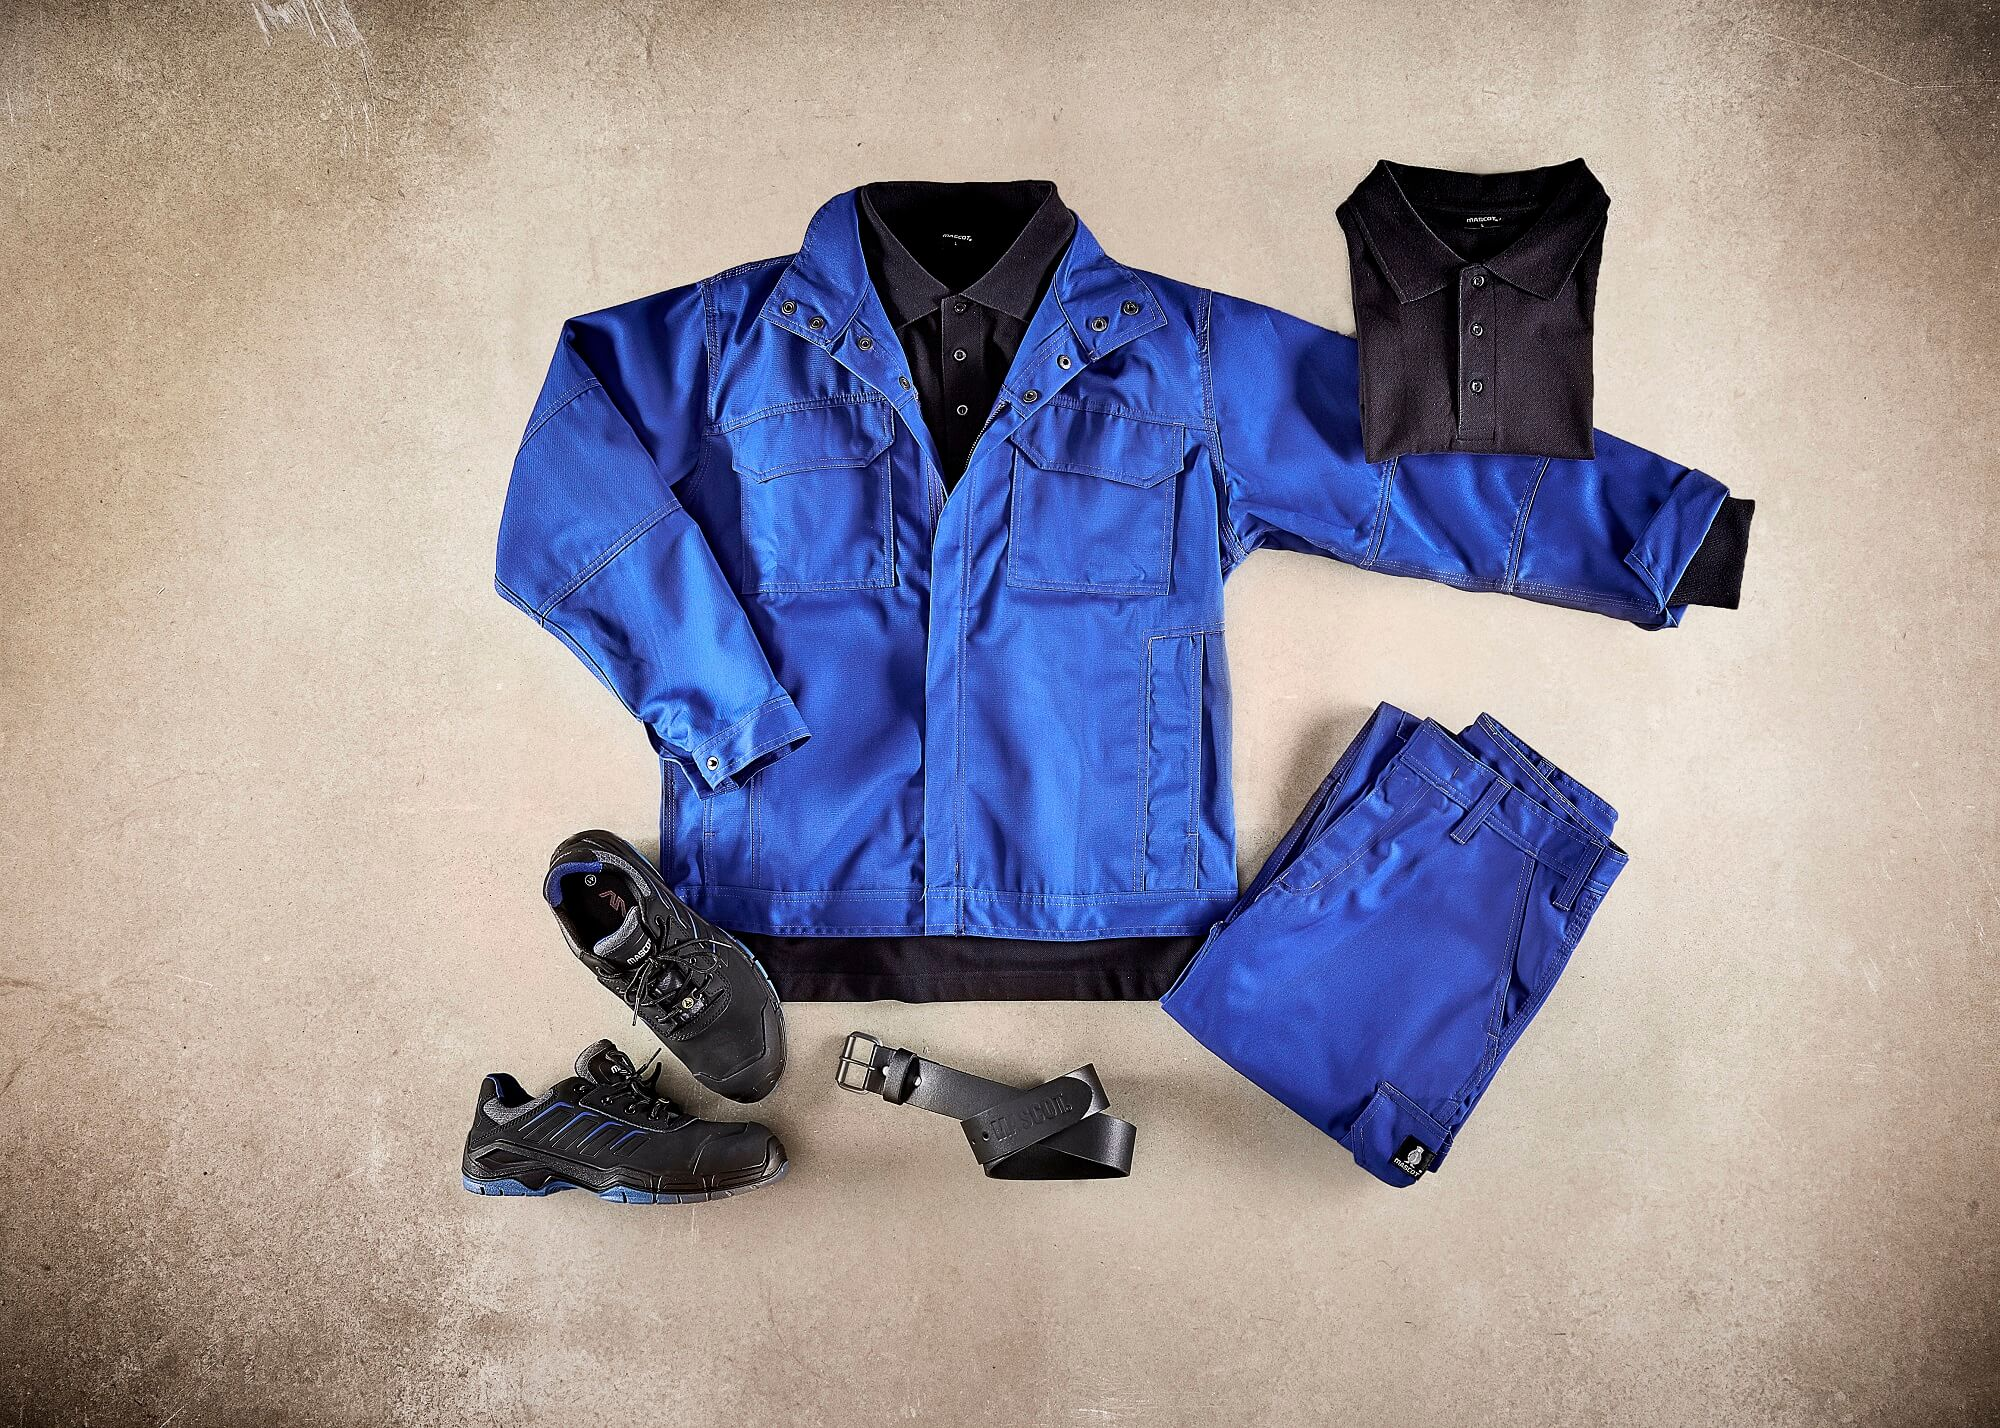 Royal blue - Work Jacket, Pants & Safety Shoe - Collage